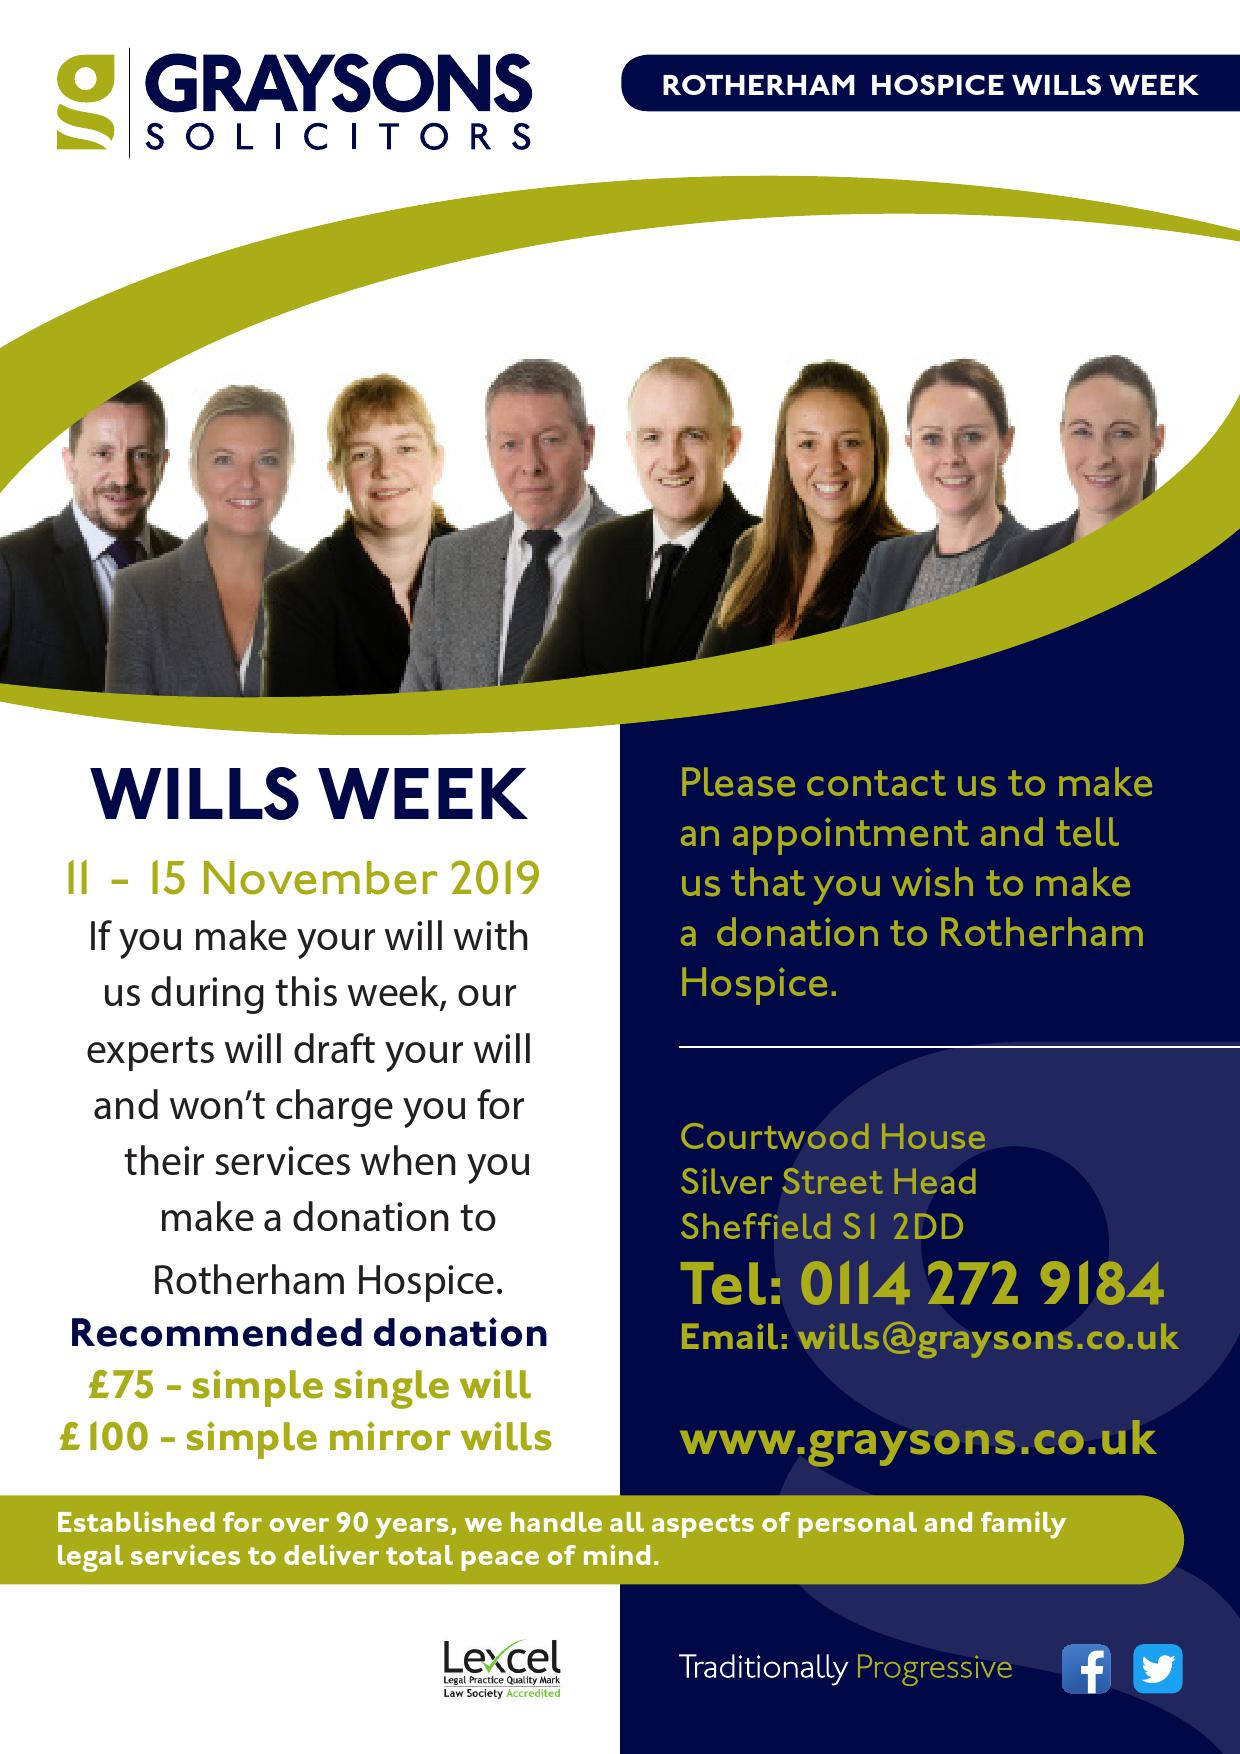 Rotherham Hospice wills week